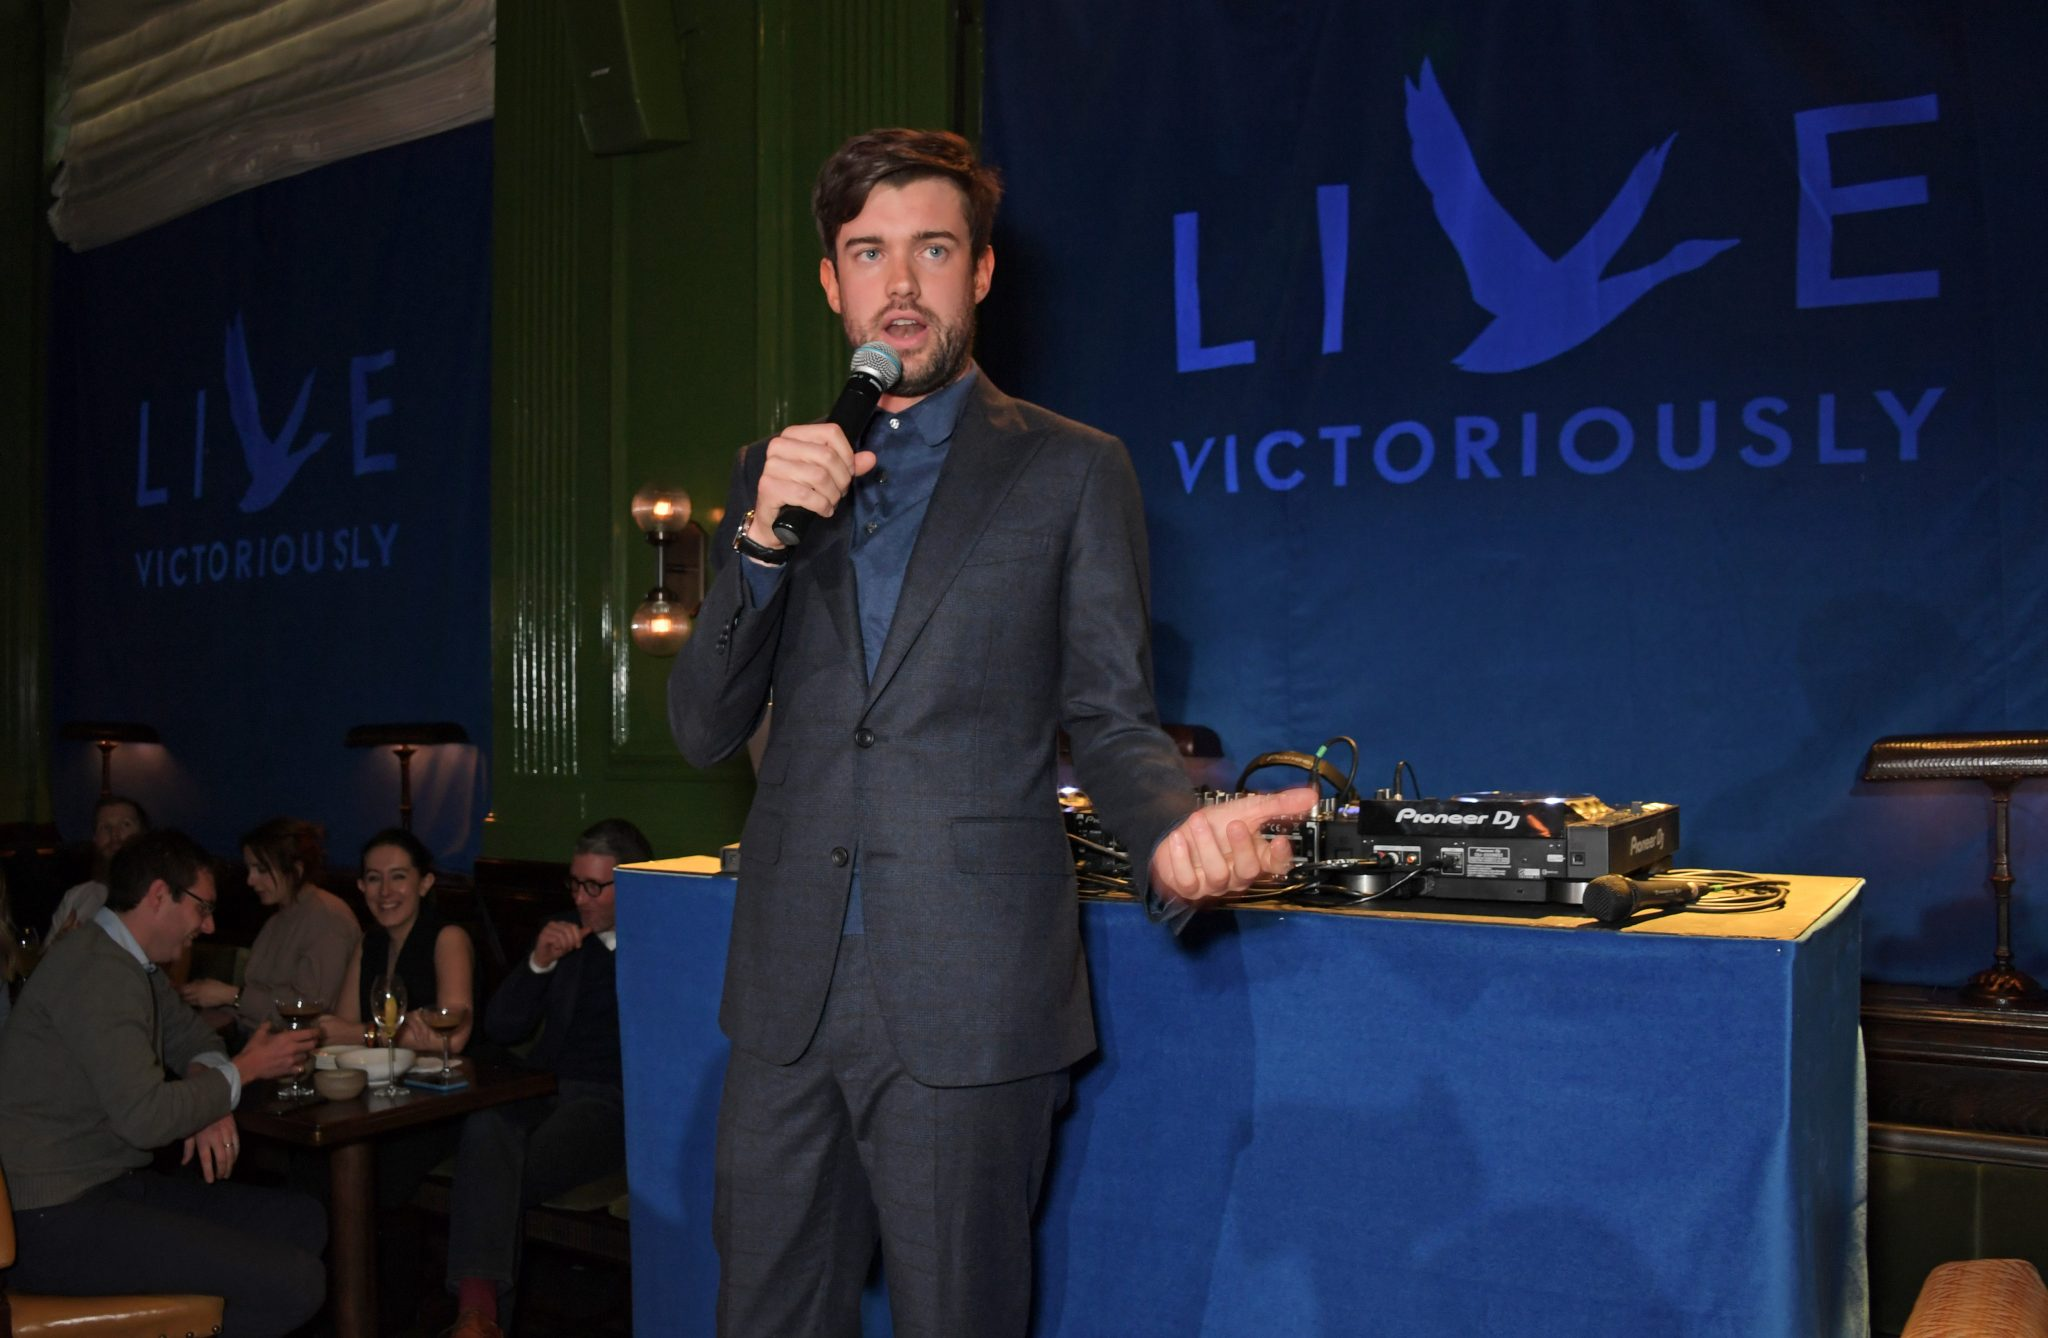 LONDON, ENGLAND - APRIL 16:  Jack Whitehall performs at the launch of the new GREY GOOSE brand platform 'Live Victoriously' with Clara Amfo, turning an average Tuesday night into an unforgettable memory with surprise performances, at The Wigmore, London on April 16, 2019 in London, England.    Pic Credit: Dave Benett